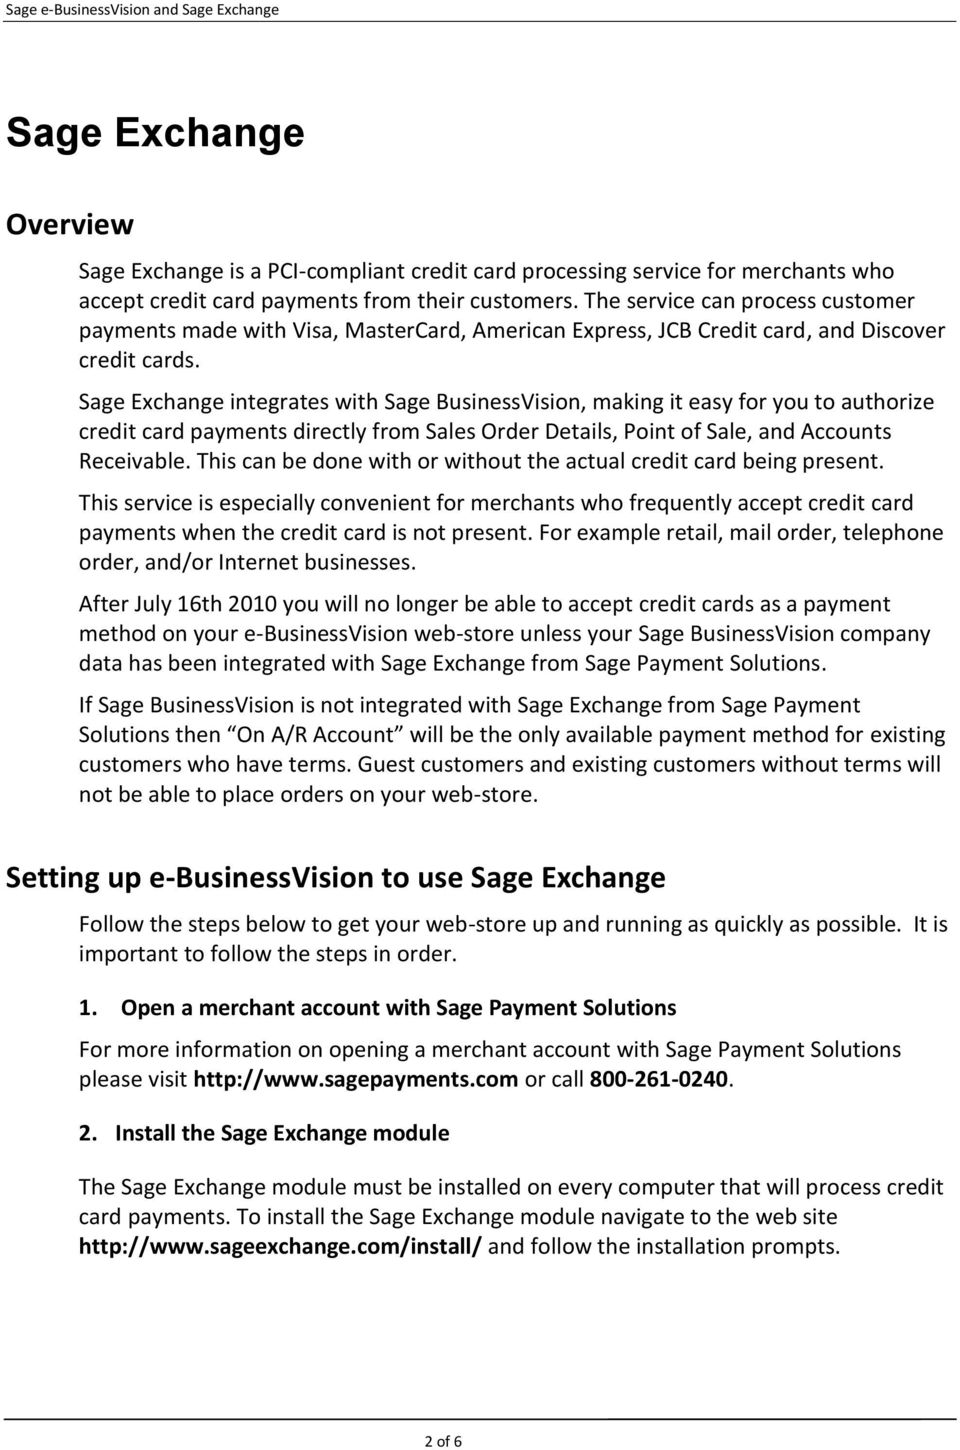 Sage Exchange integrates with Sage BusinessVision, making it easy for you to authorize credit card payments directly from Sales Order Details, Point of Sale, and Accounts Receivable.